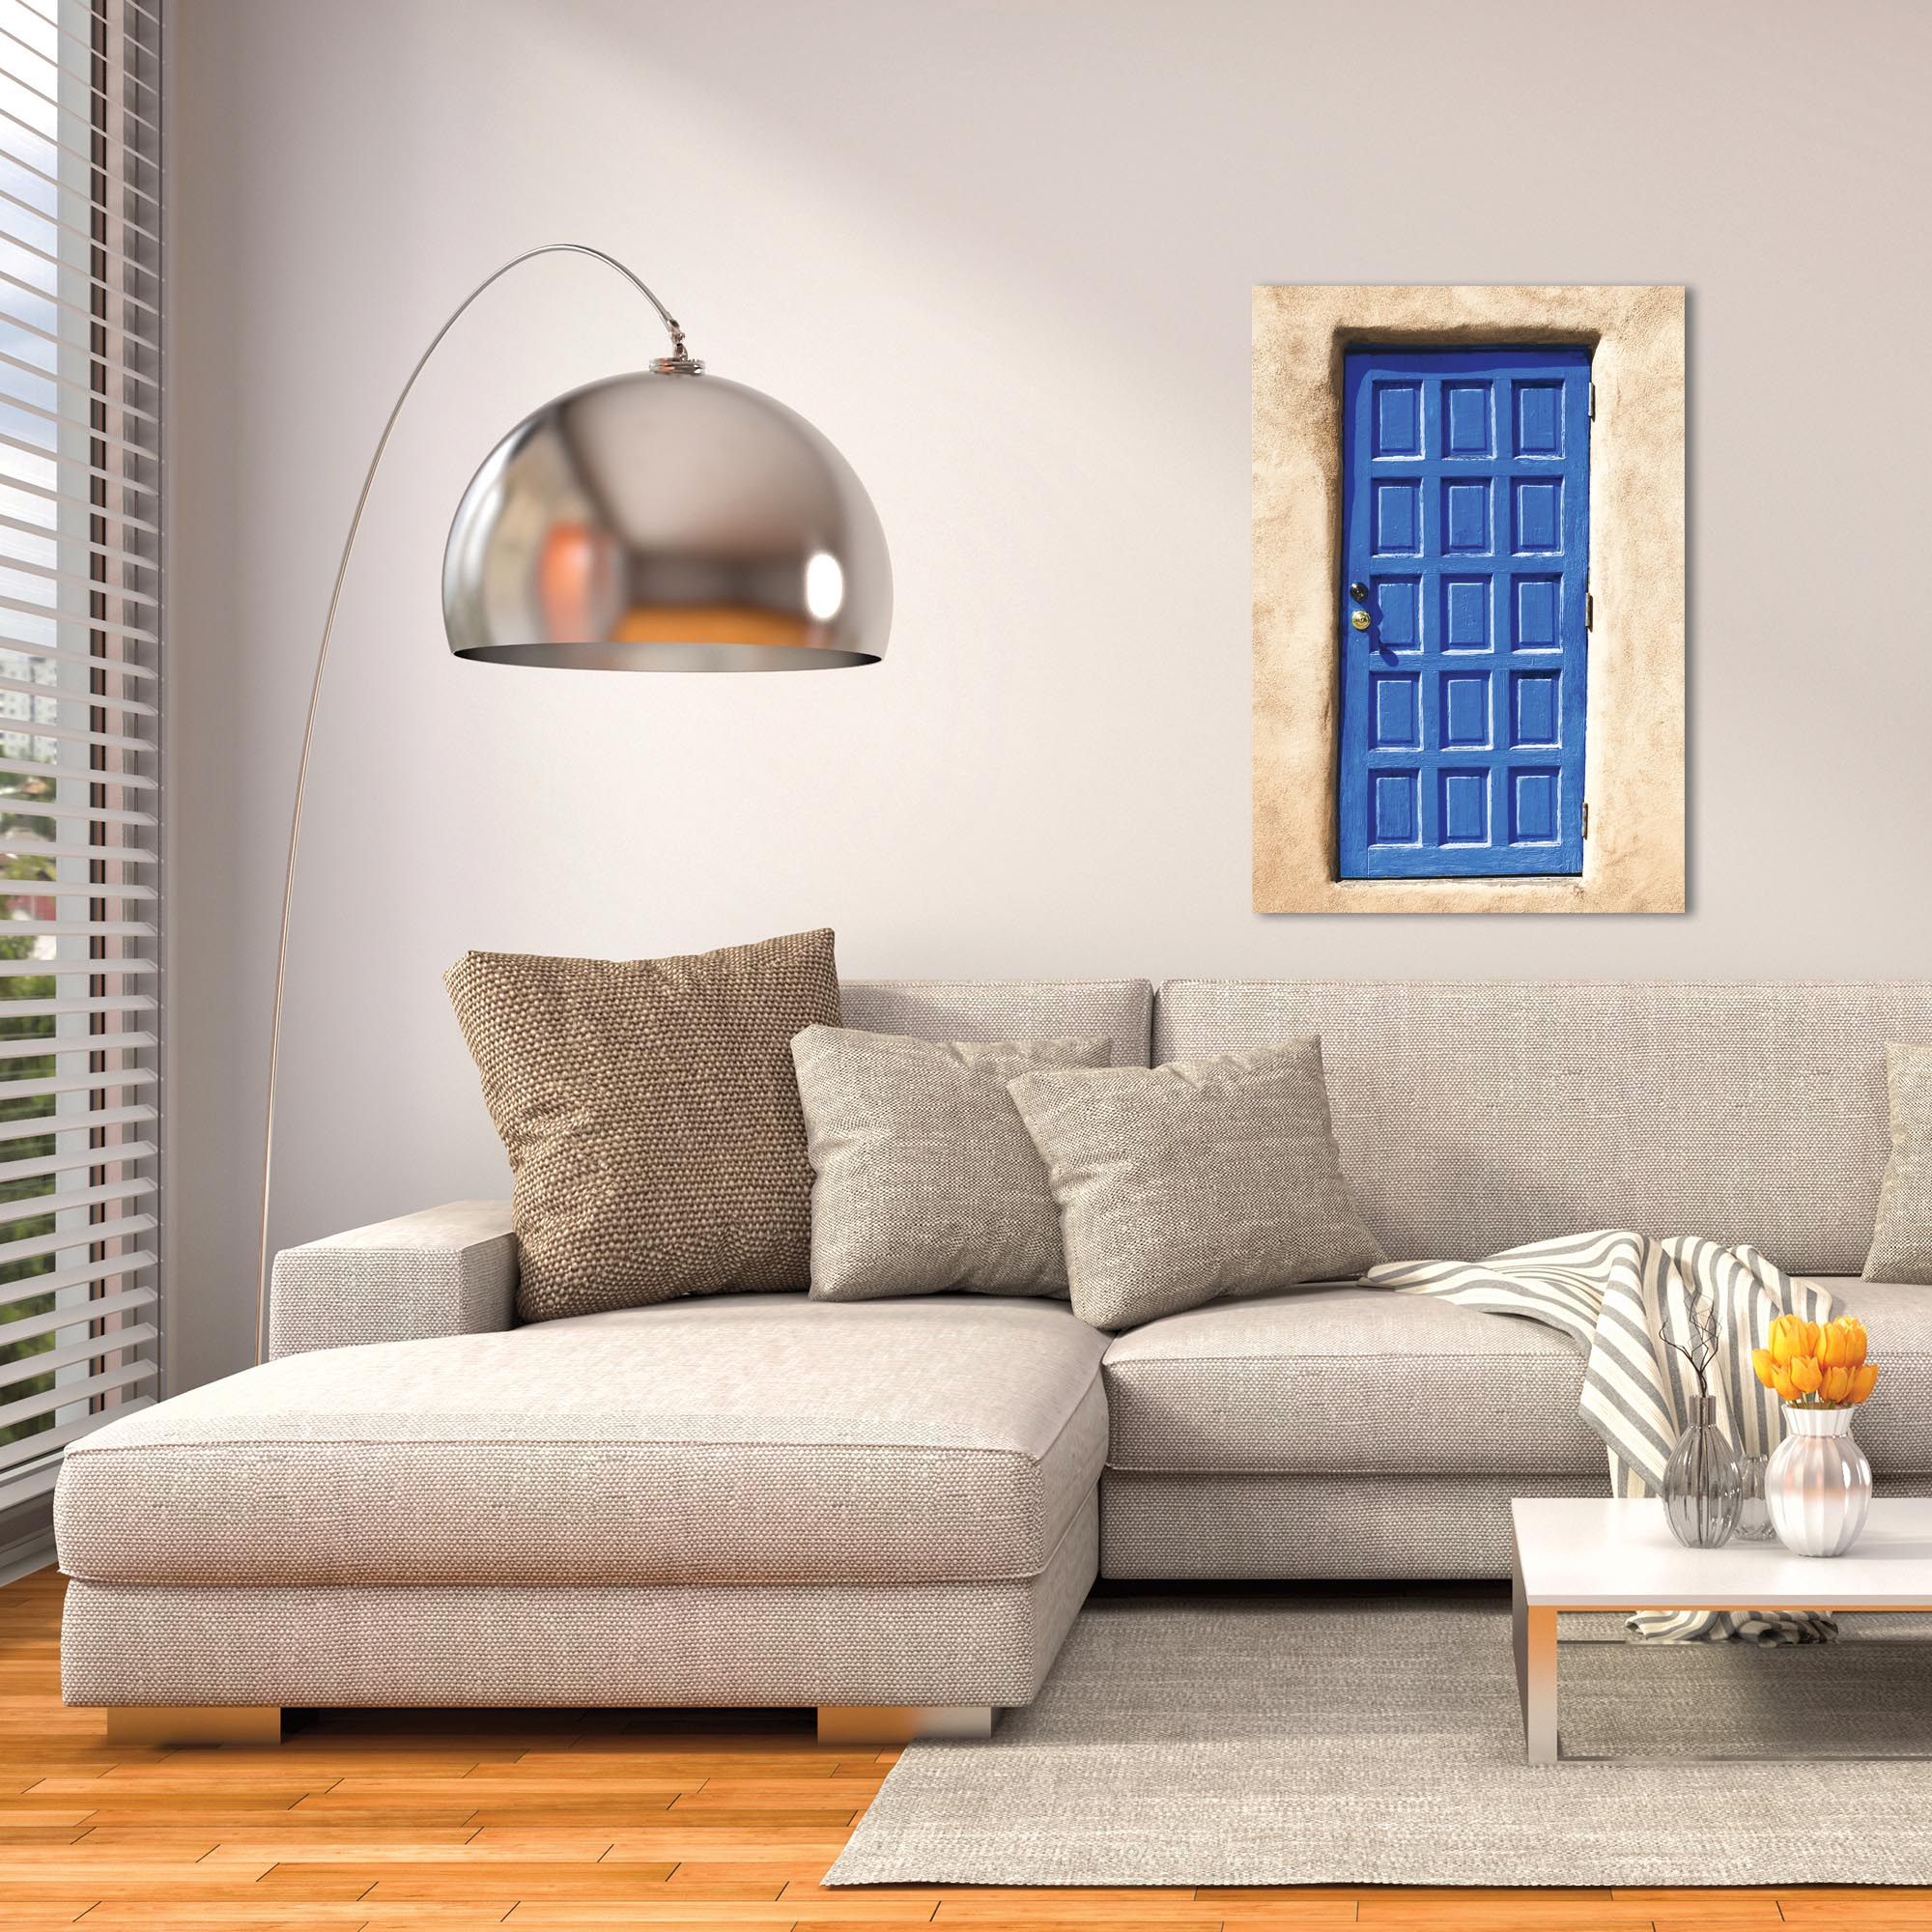 Eclectic Wall Art 'Blue Door' - Architecture Decor on Metal or Plexiglass - Lifestyle View